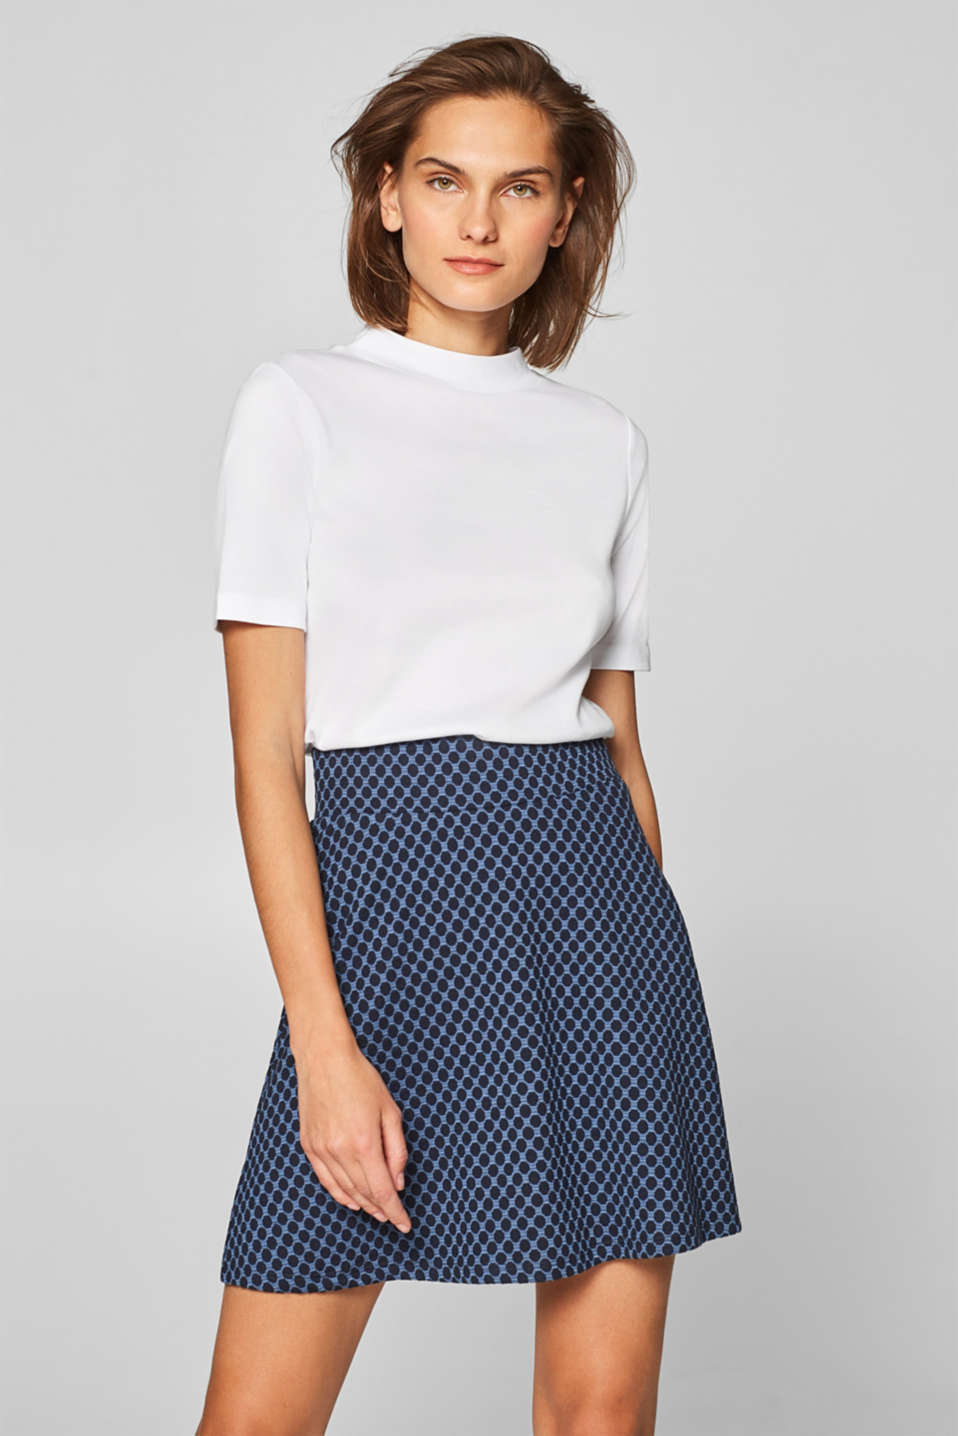 Esprit - Stretch jersey skirt with jacquard polka dots